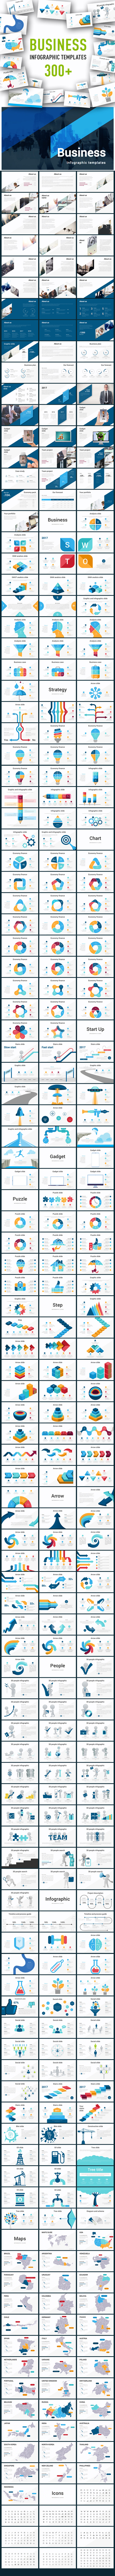 Business Infographic templates Max 2.0